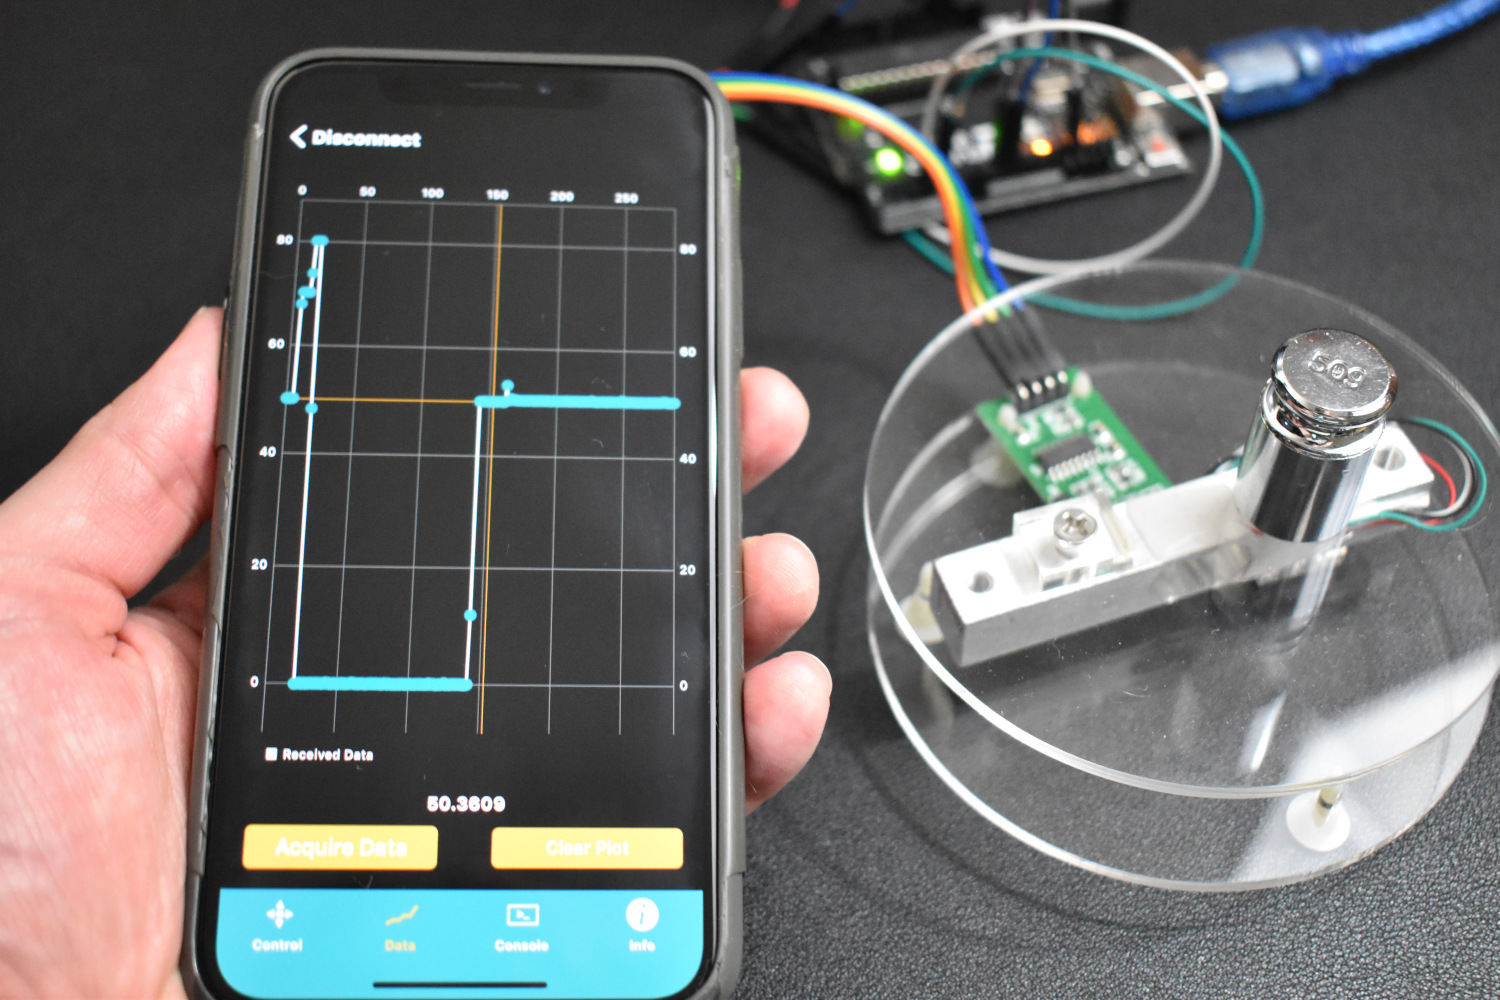 Smartphone Arduino Weighing Scale with Load Cell and HX711 — Maker